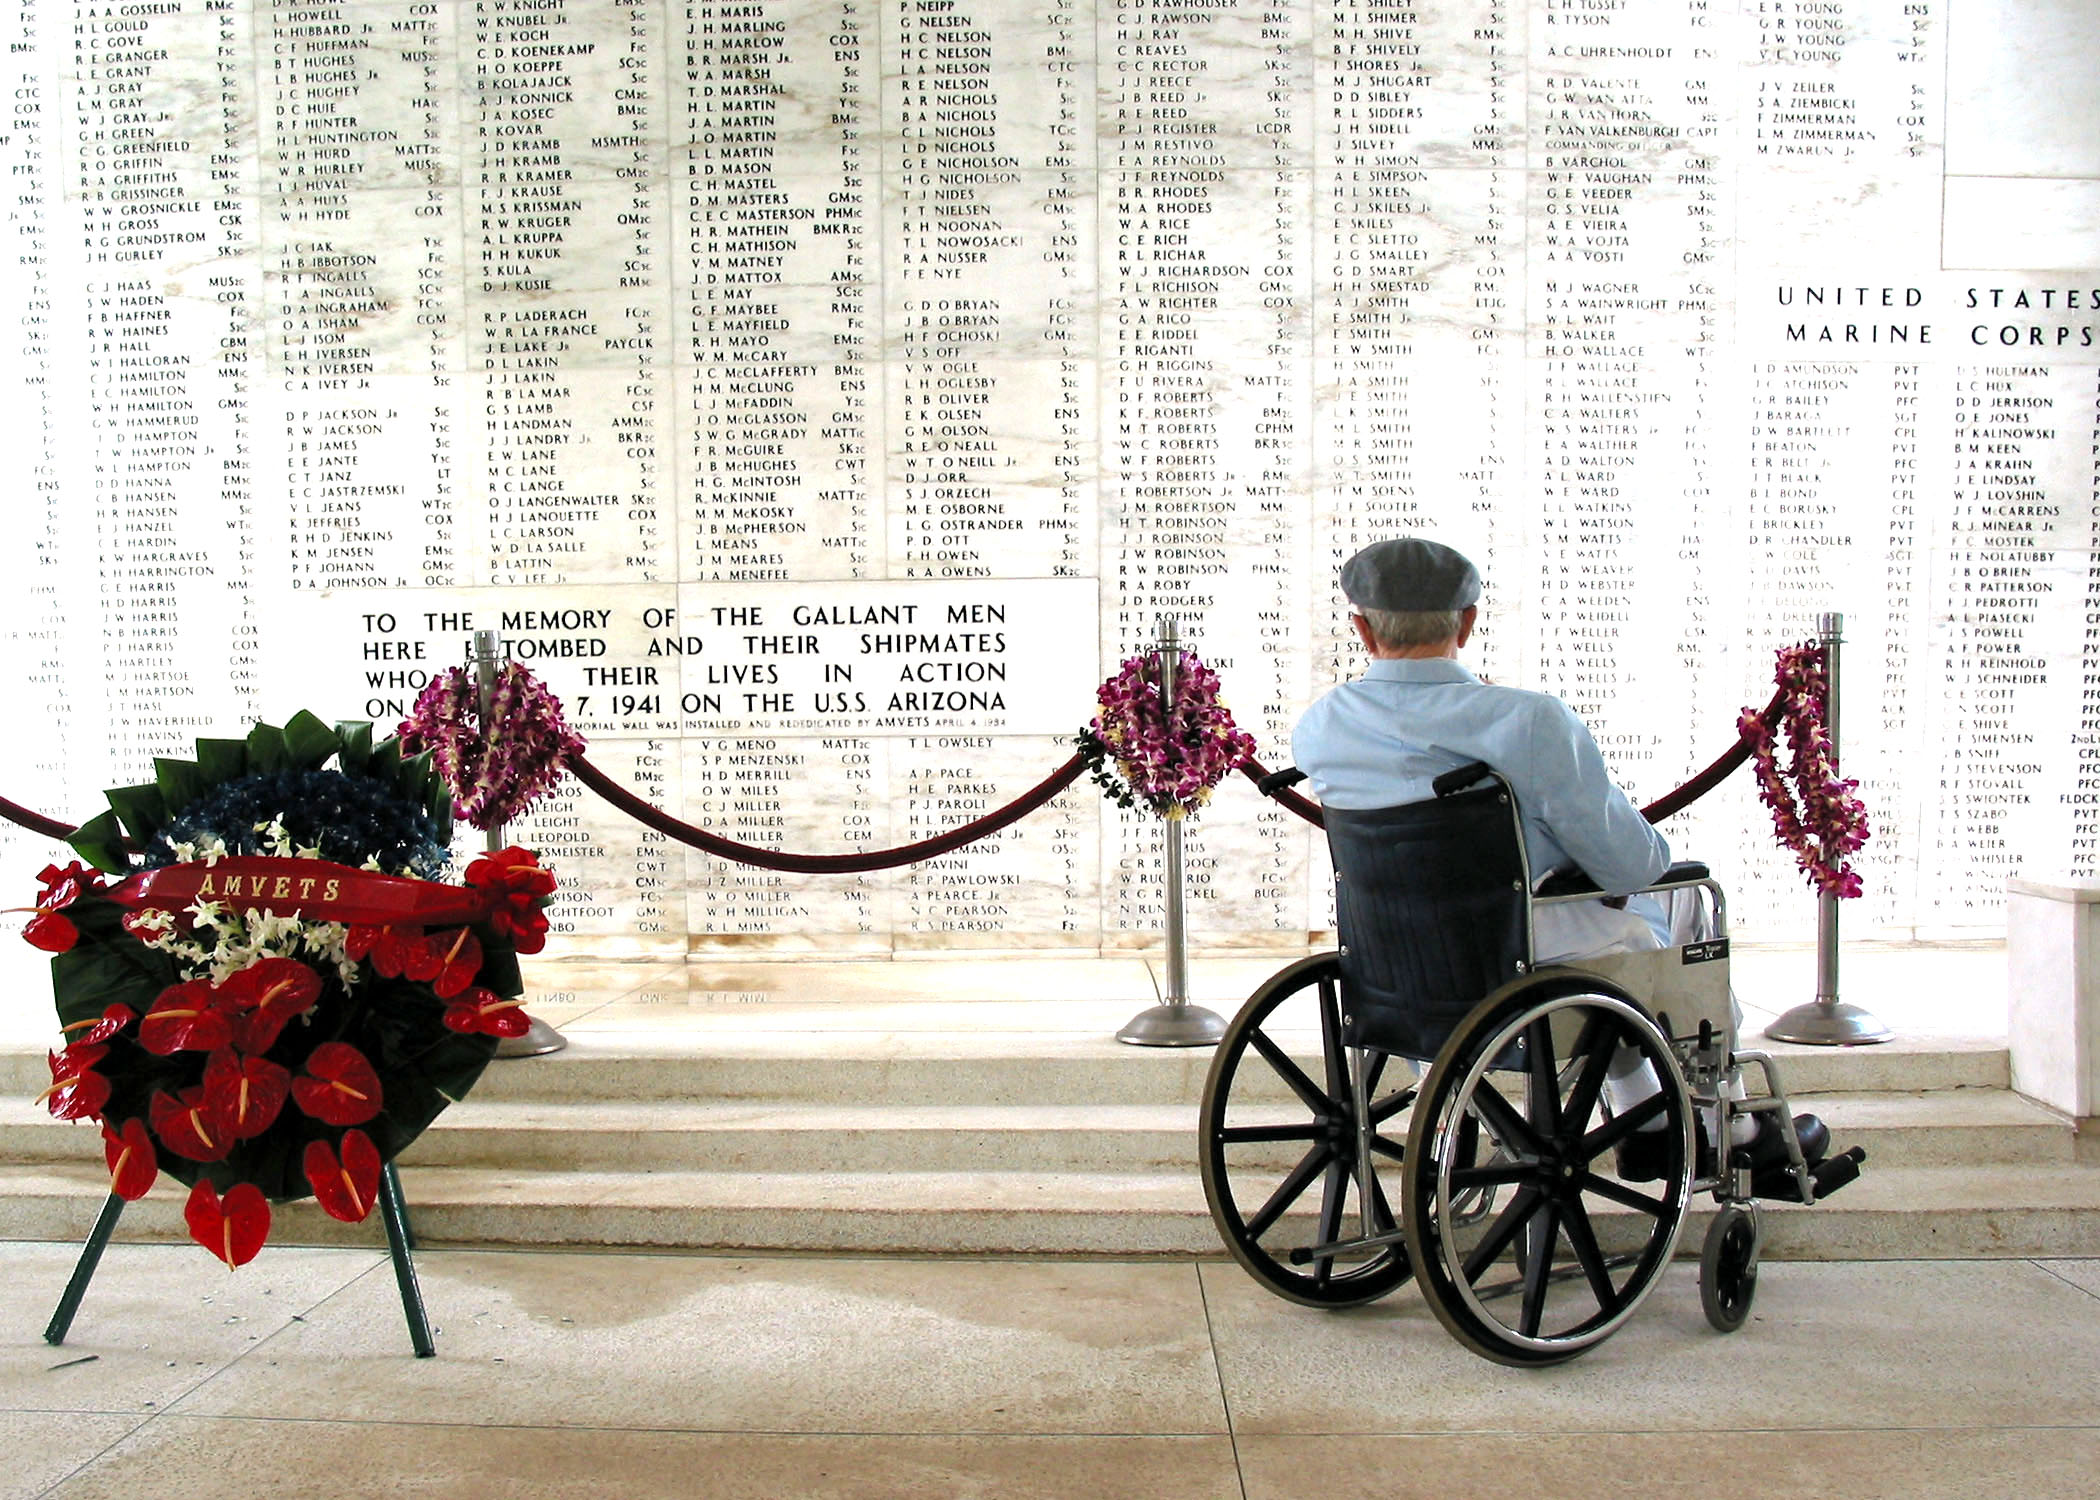 040120-N-0879R-009 Pearl Harbor, Hawaii (Jan. 20, 2004) -- Pearl Harbor survivor Bill Johnson stares at the list of names inscribed in the USS Arizona Memorial. Johnson visited the memorial to pay respects to the Sailors killed that day, particularly his friend and high school buddy, W N Royals, 64 years after the attack. He also met with Rear Adm. Paul F. Sullivan, Commander, U.S. Submarine Force U.S. Pacific Fleet, who presented him with a command coin. He also received a pier side tour of USS La Jolla (SSN 701) and toured the Bowfin Museum. Johnson served in the U.S. Navy as a Torpedoman 1st Class for seven years and made several patrols aboard USS Holland and USS Devilfish. While on Patrol in the Pacific aboard USS Devilfish, Johnson and his shipmates survived a kamikaze attack and also managed to escape an enemy minefield. U.S. Navy photo by Chief Journalist David Rush. (RELEASED)